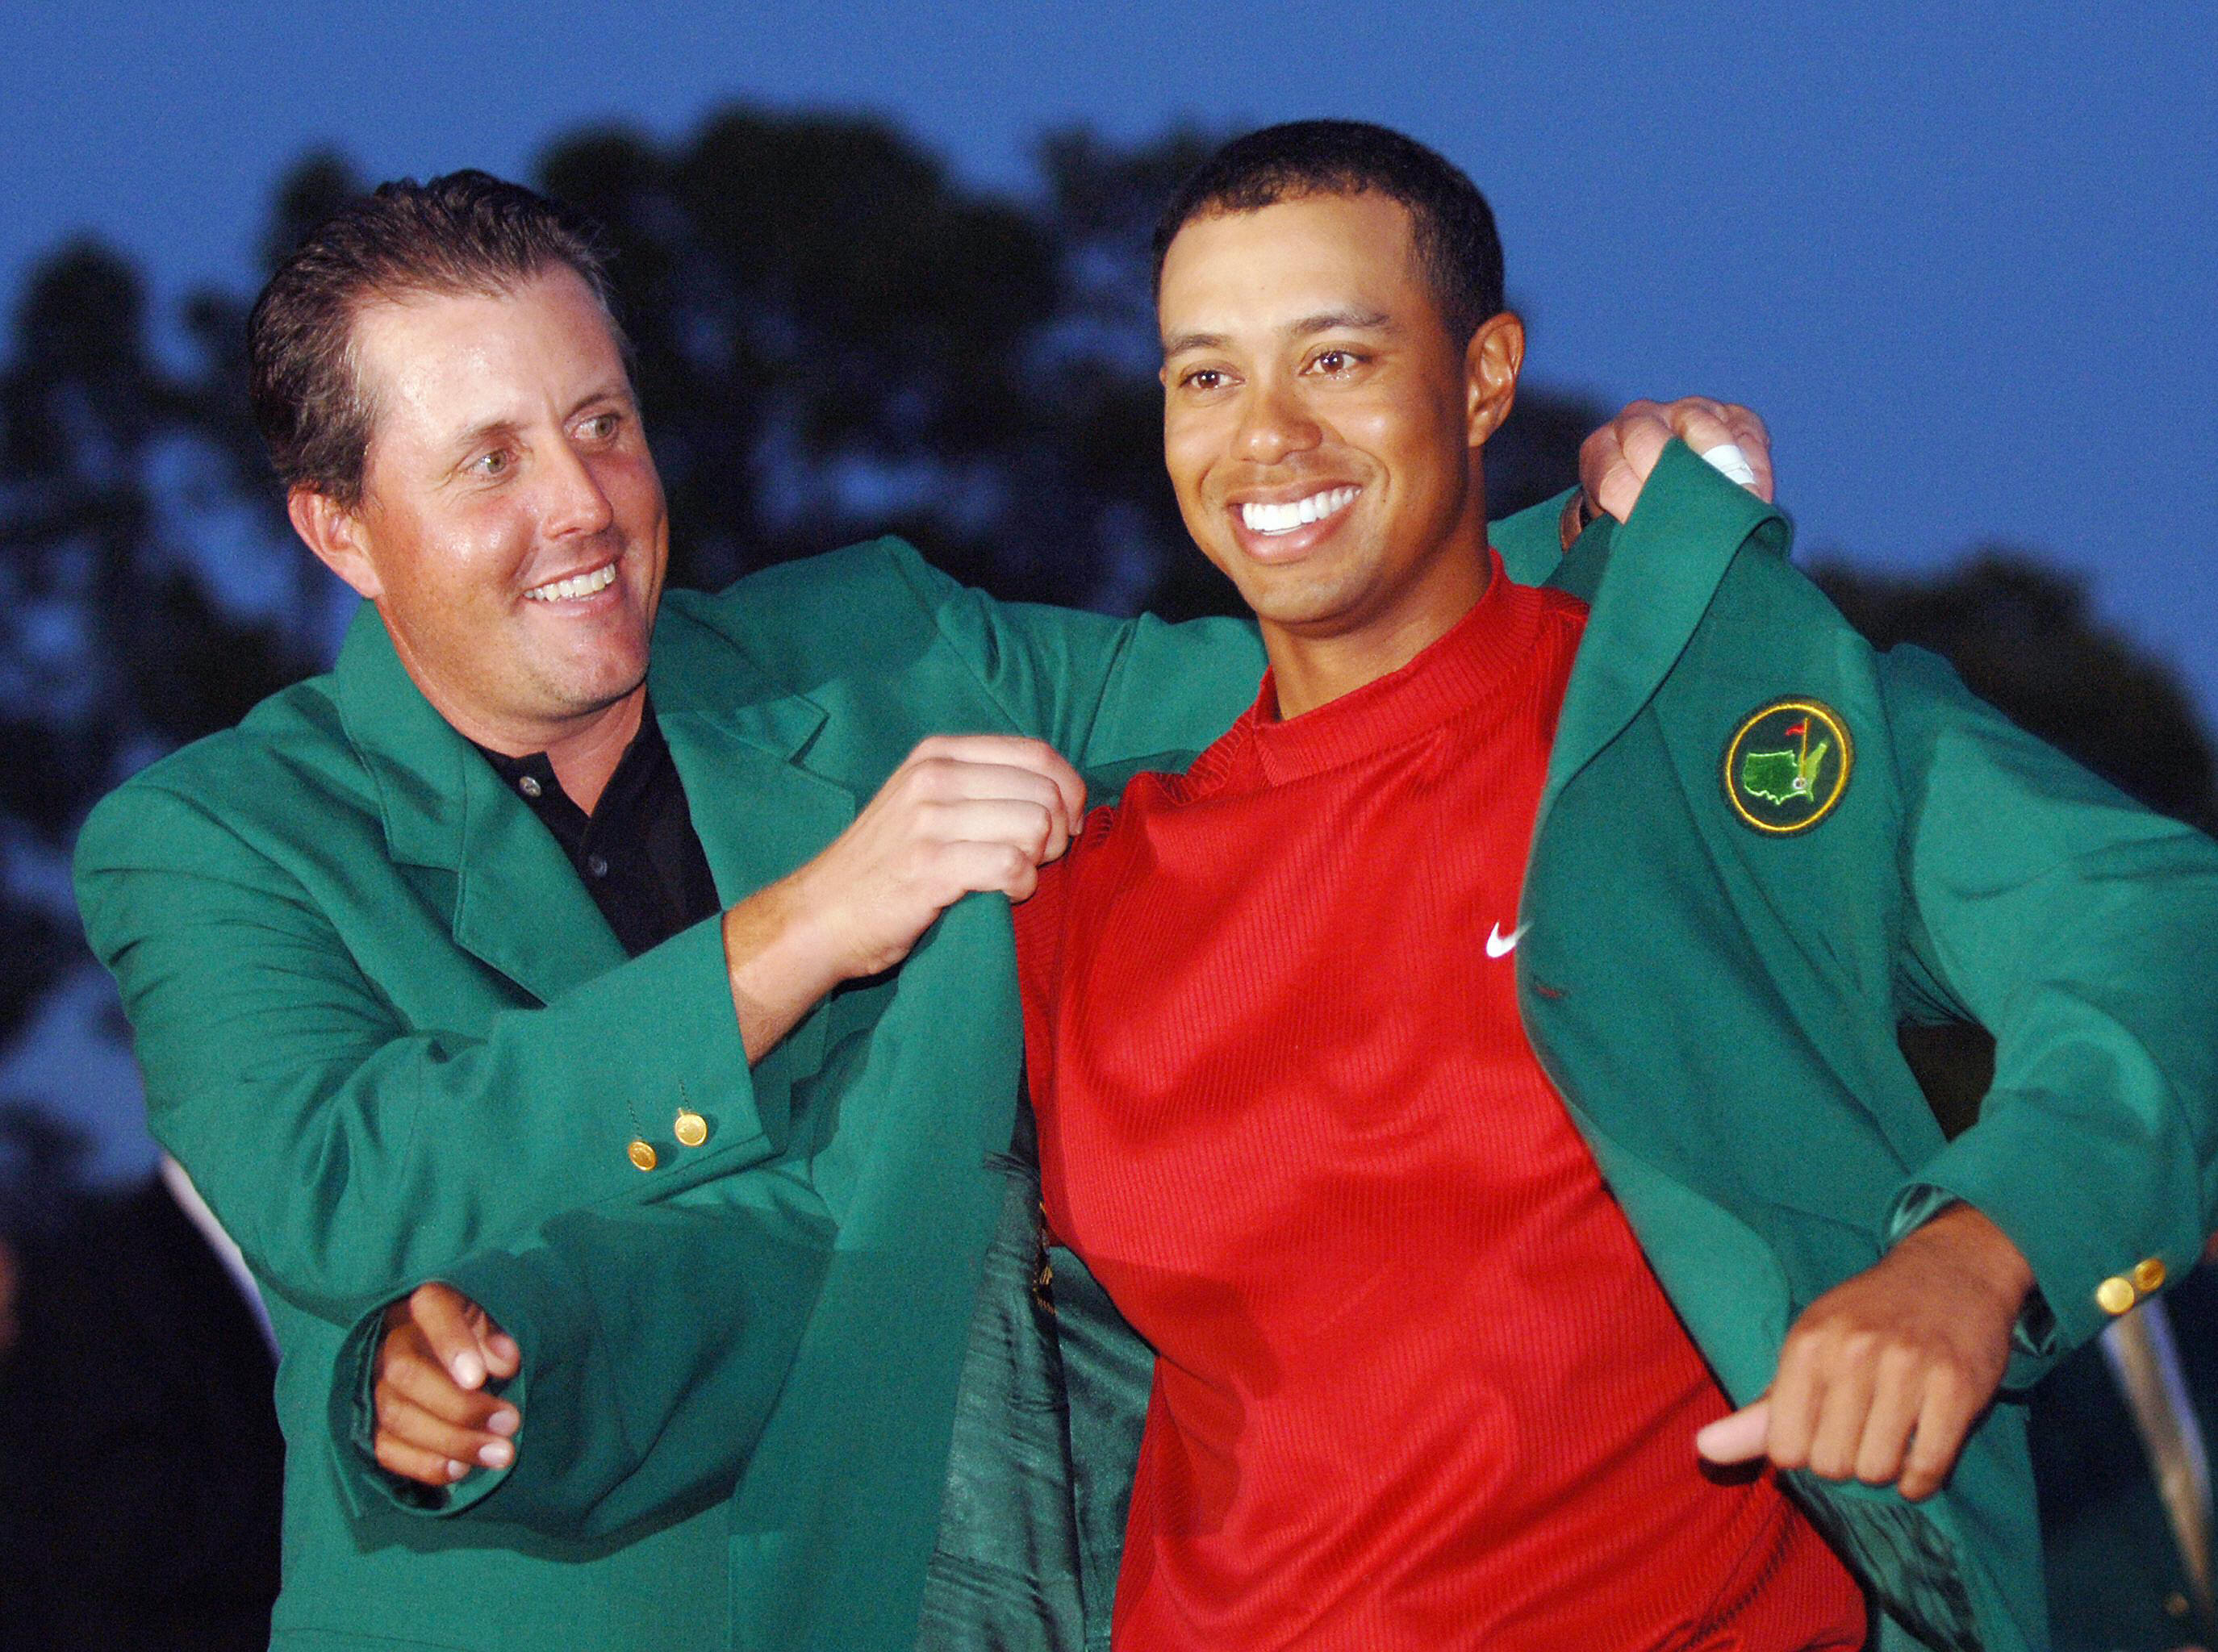 AUGUSTA, UNITED STATES: US golfer Tiger Woods (R) is awarded his green jacket by 2004 champion Phil Mickelson of the US at the 2005 Masters Golf Tournament Championship 10 April 2005 at the Augusta National Golf Club in Augusta, Ga. Woods claimed his 4th Masters title by defeating fellow American Chris DiMarco in a one-hole playoff. AFP PHOTO/Roberto SCHMIDT (Photo credit should read ROBERTO SCHMIDT/AFP/Getty Images)